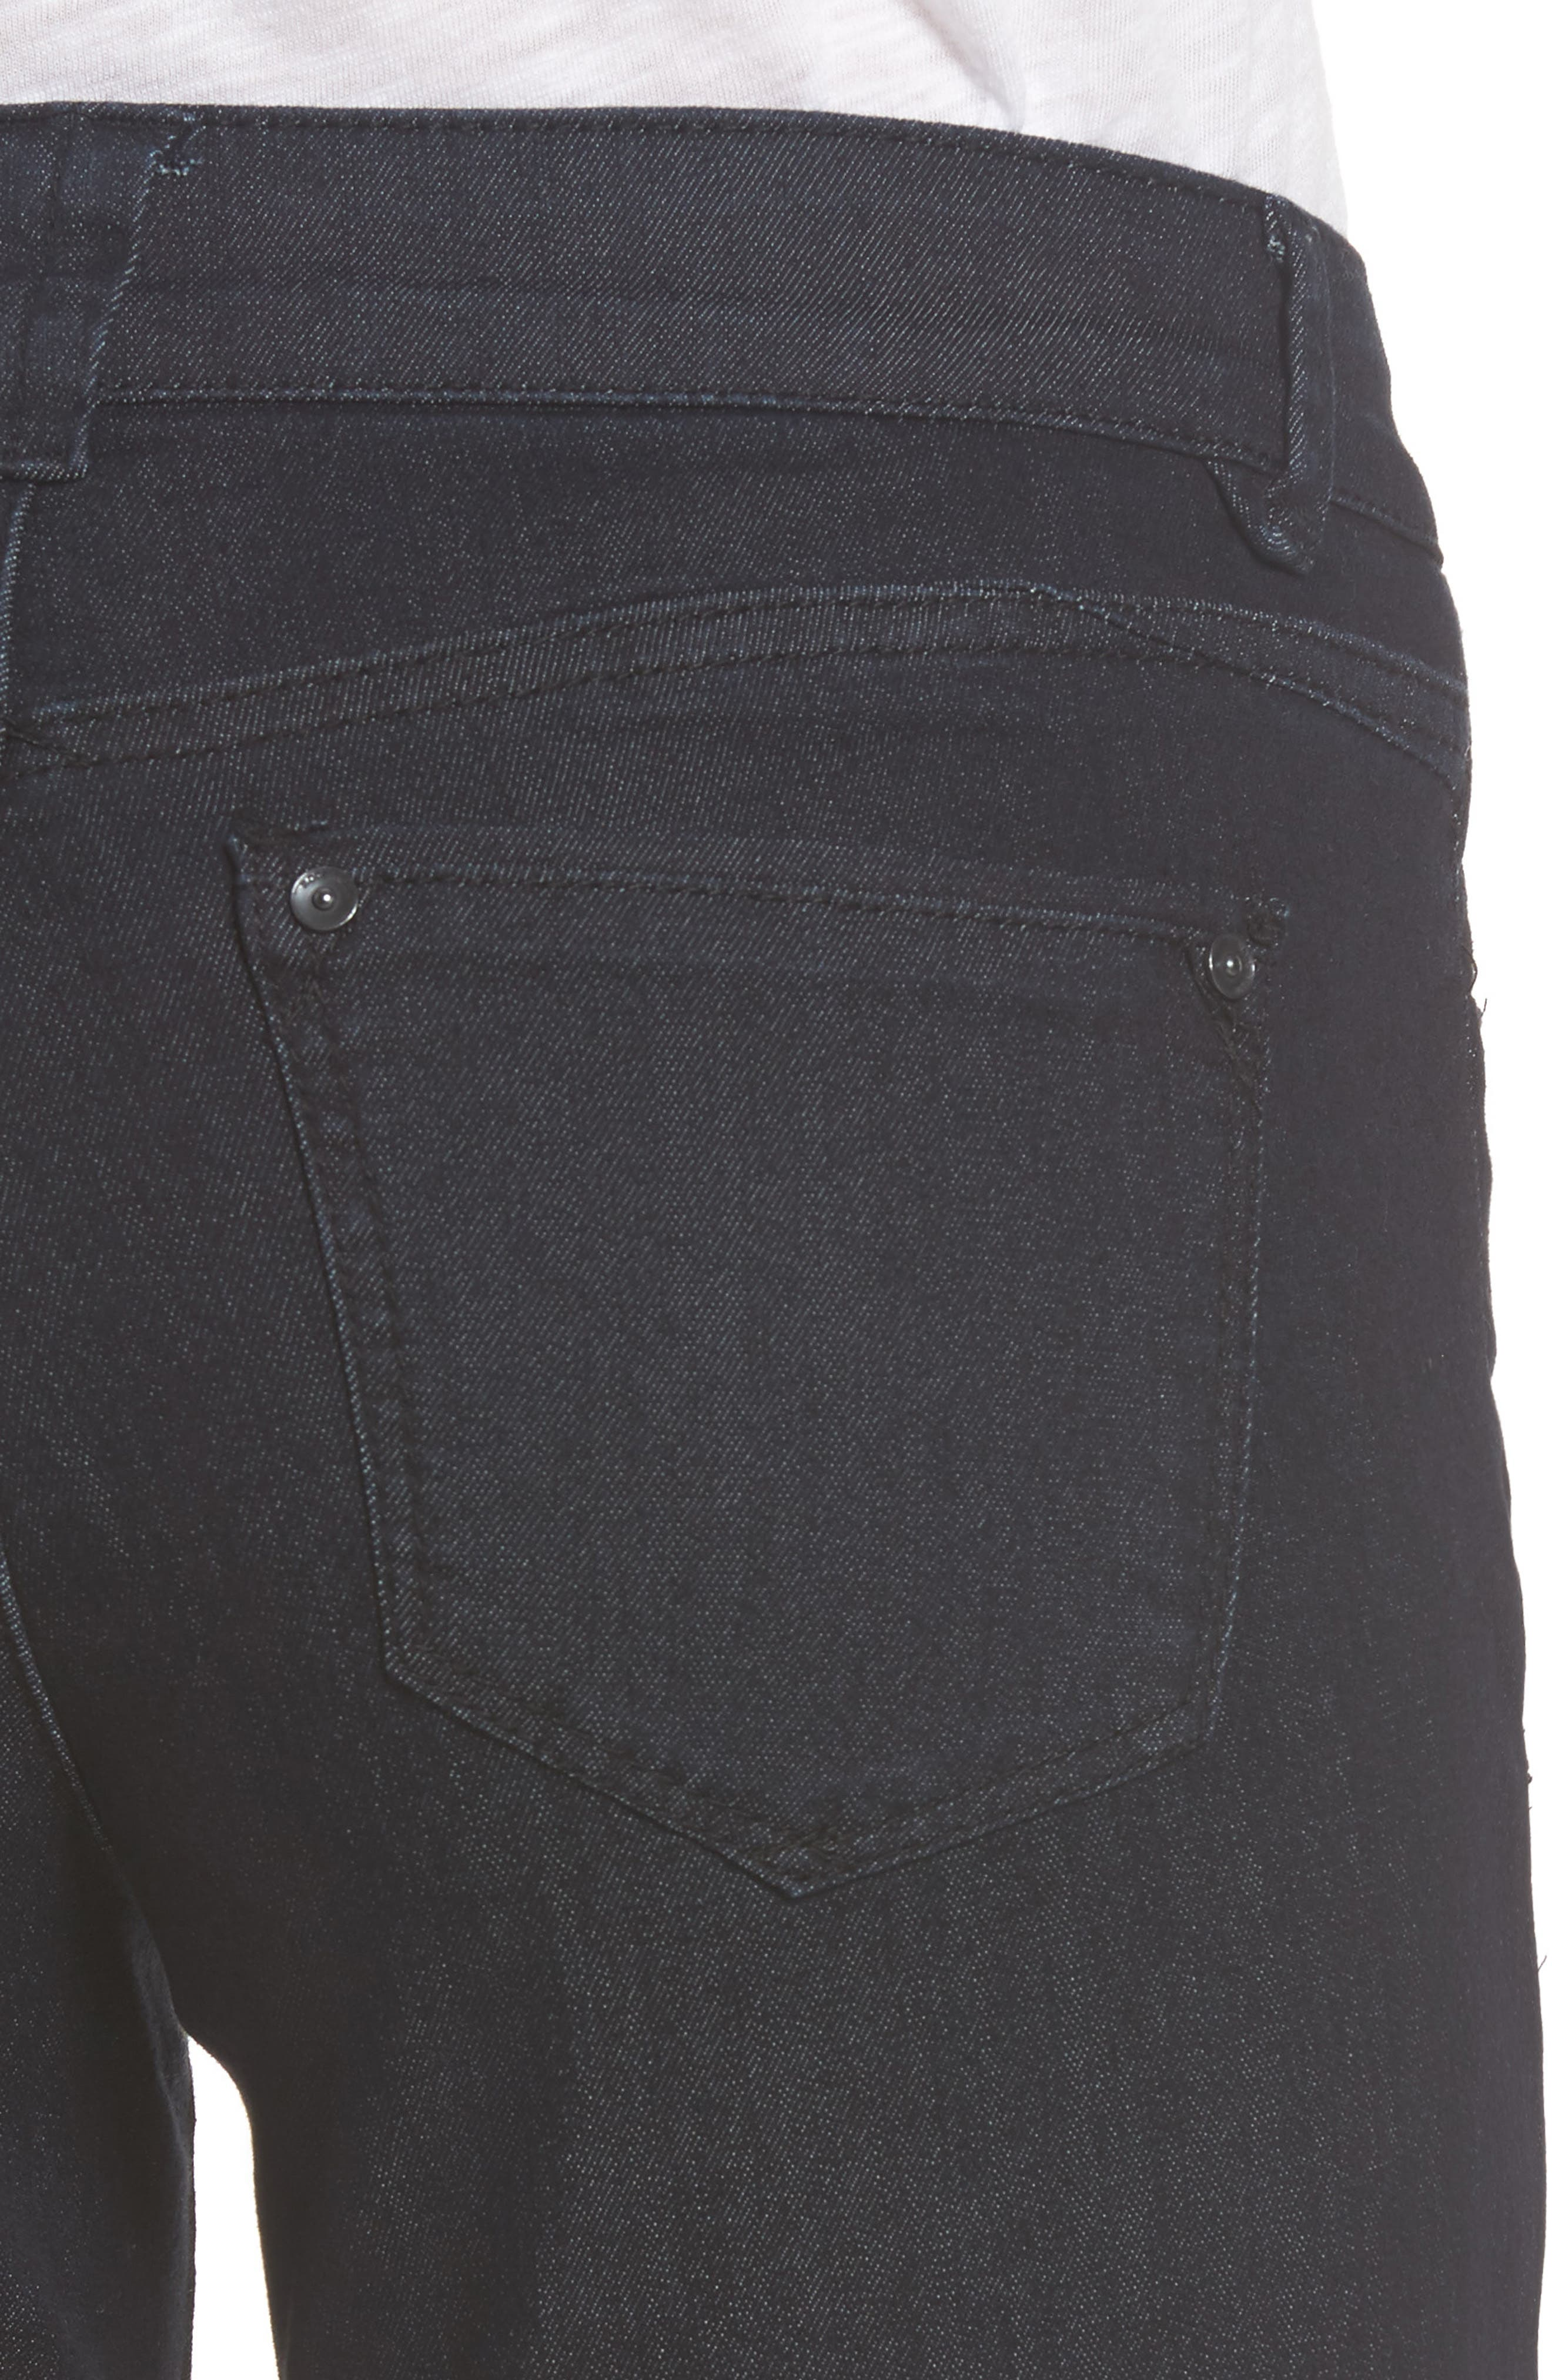 Alternate Image 4  - Wit & Wisdom Ab-solution Straight Leg Jeans (Regular & Petite) (Nordstrom Exclusive)